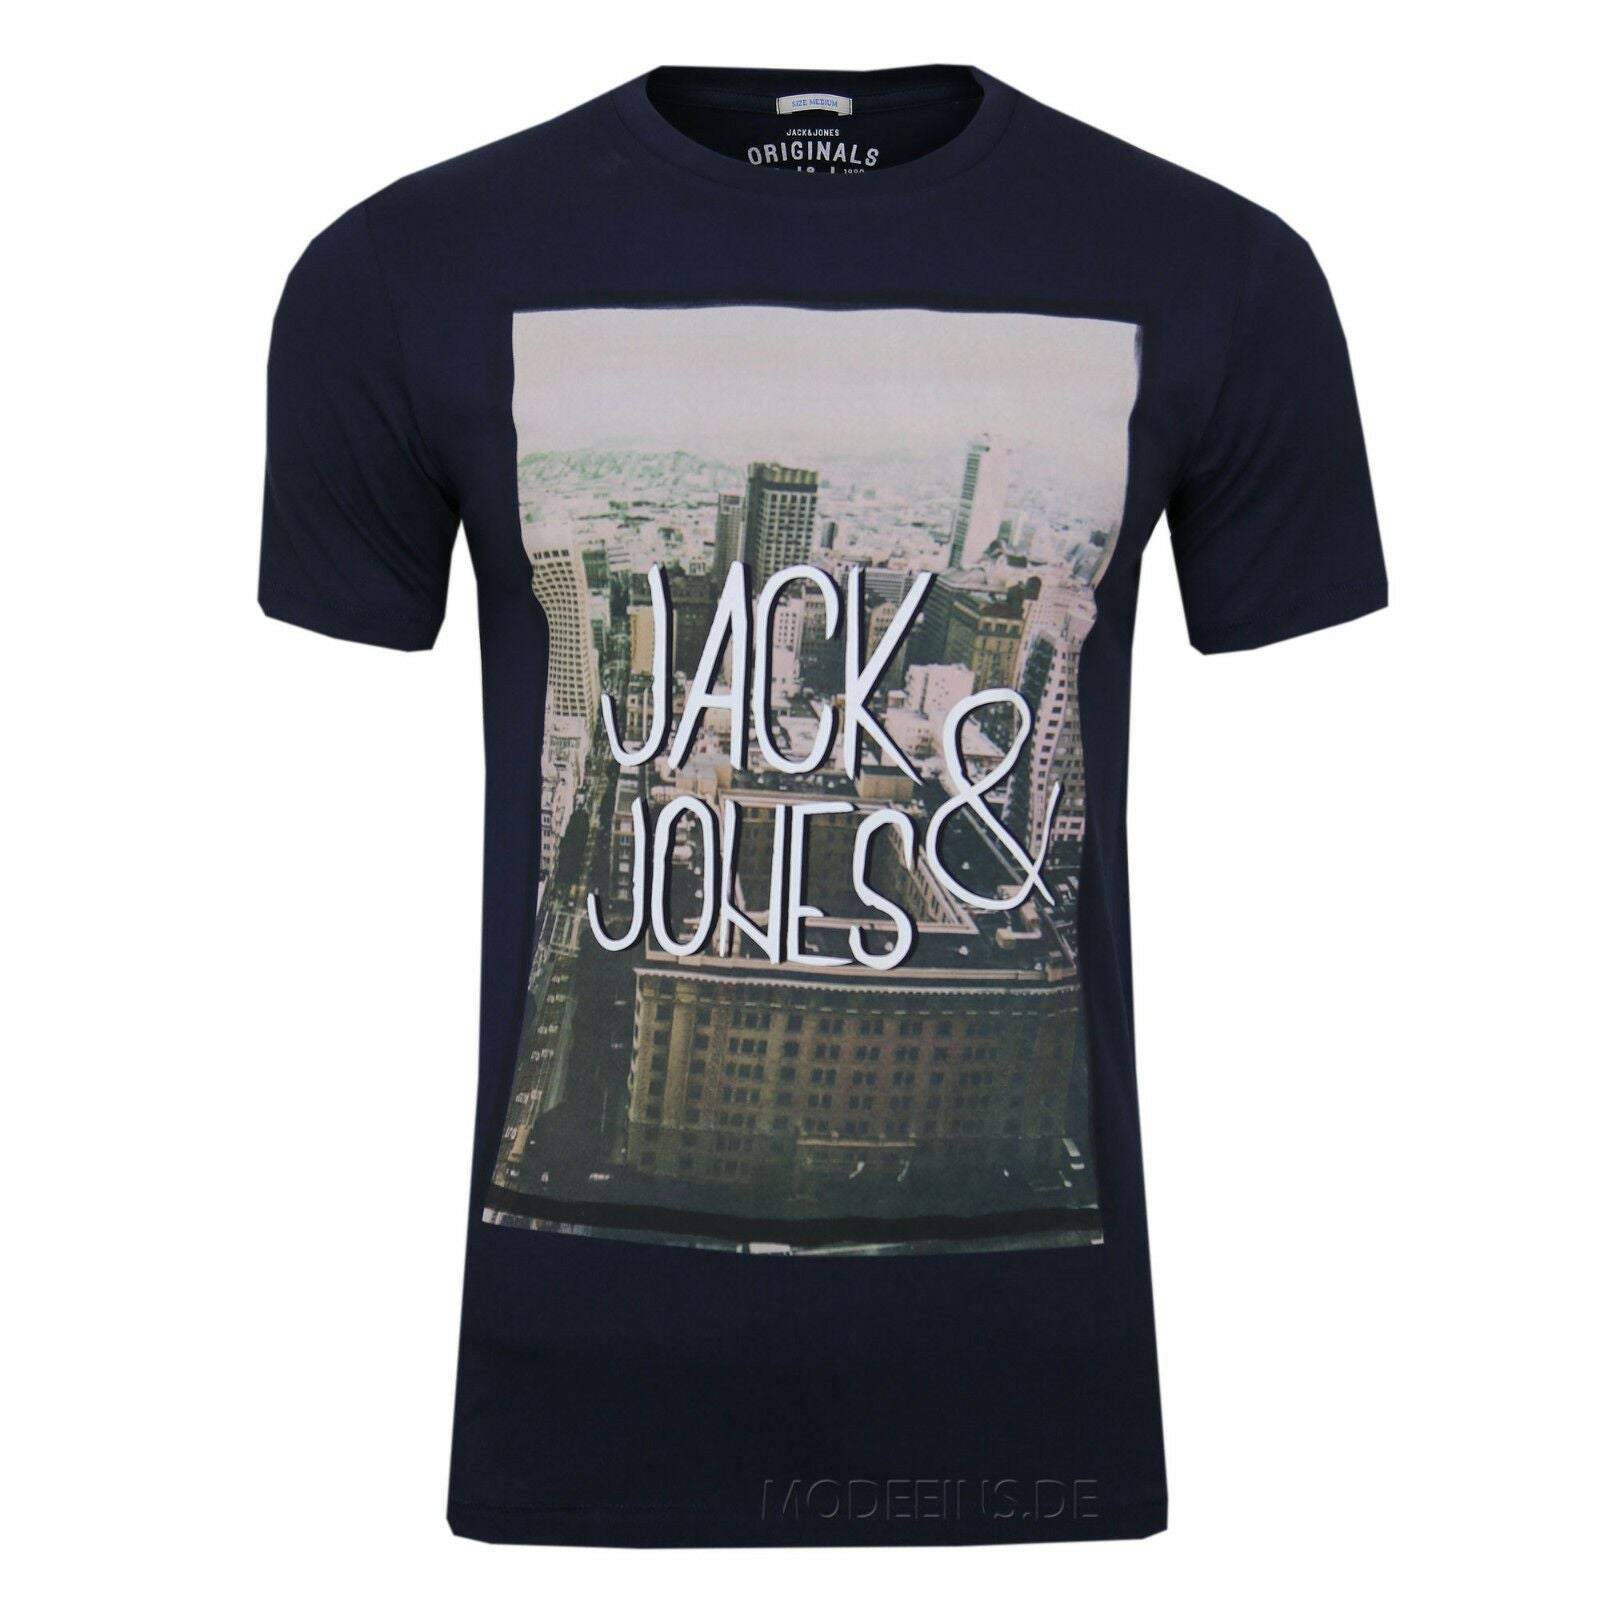 JACK & JONES HERREN T-SHIRT Gr.S,M,L,XL,XXL - Jack & Jones